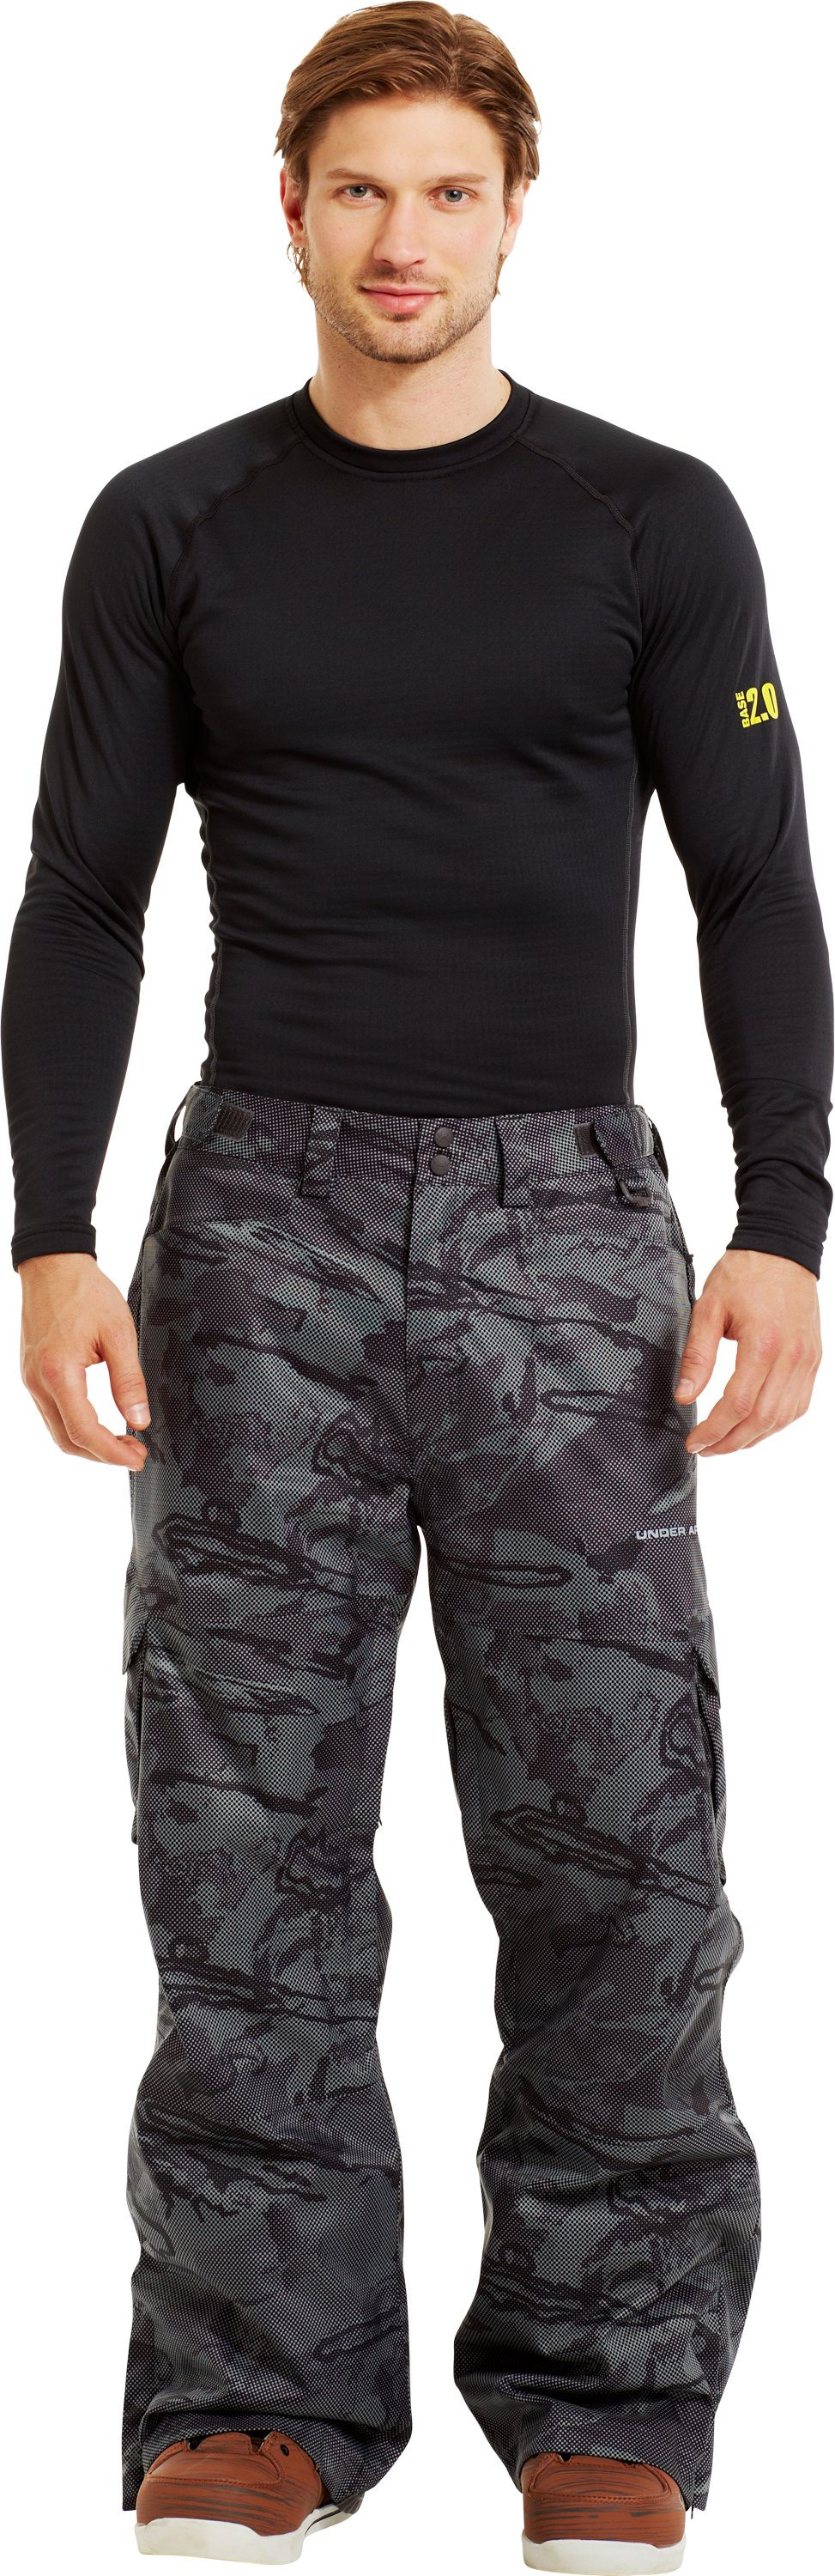 Men's ColdGear® Infrared Snocone Pants, Charcoal, Front